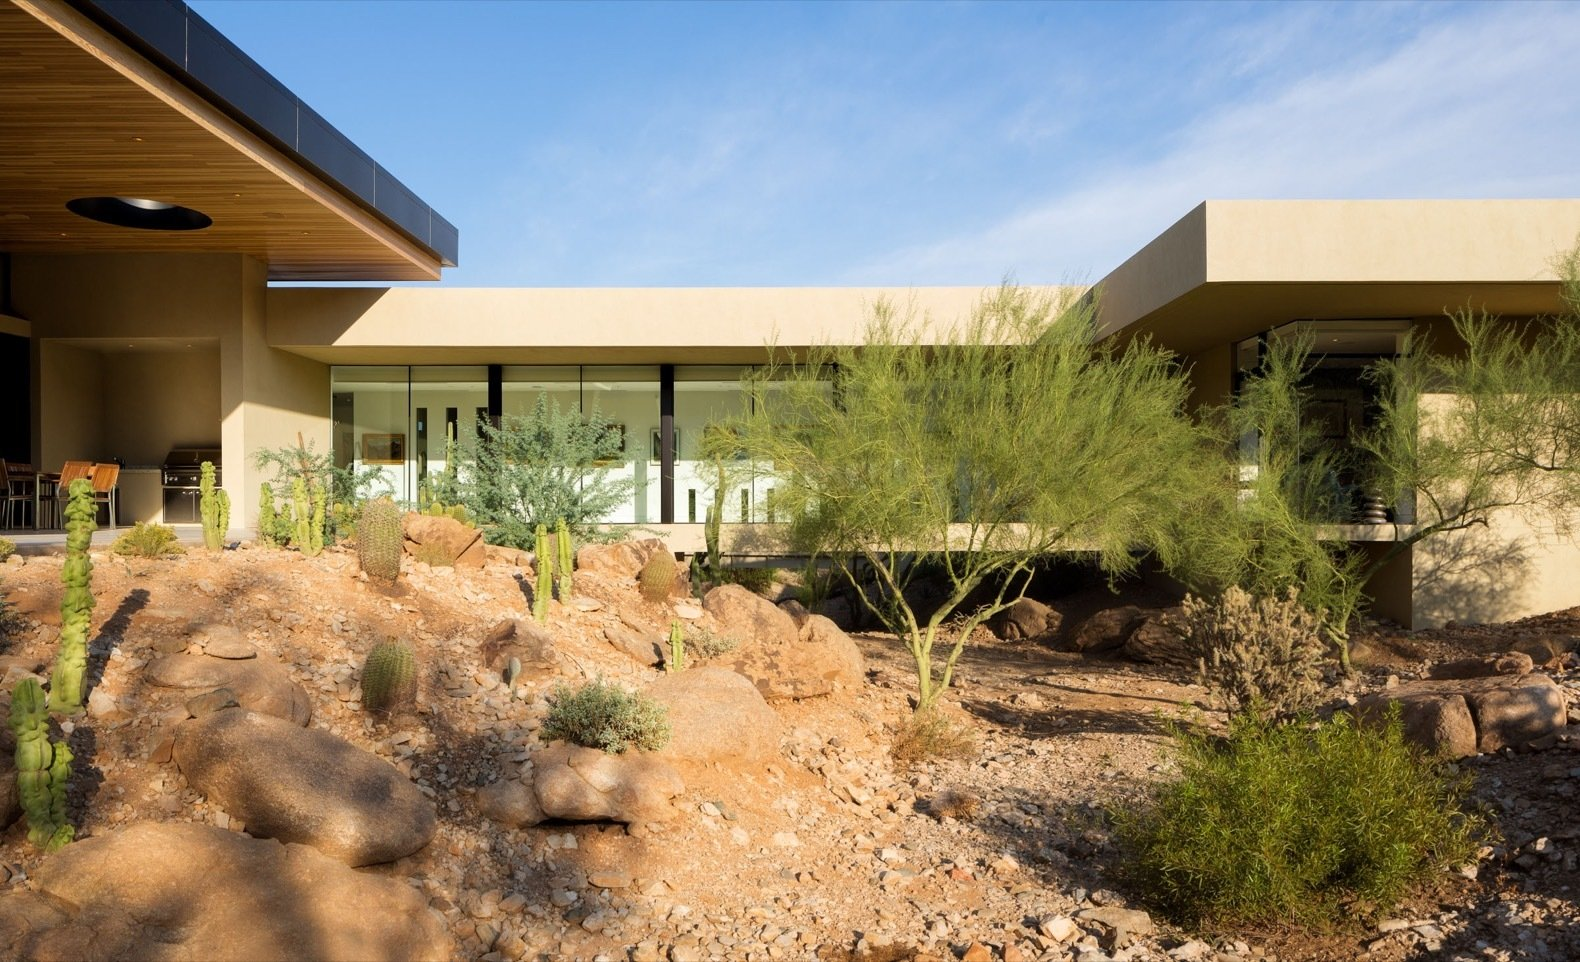 Rammed Earth Walls Tie This Eco-Friendly Home to the Desert